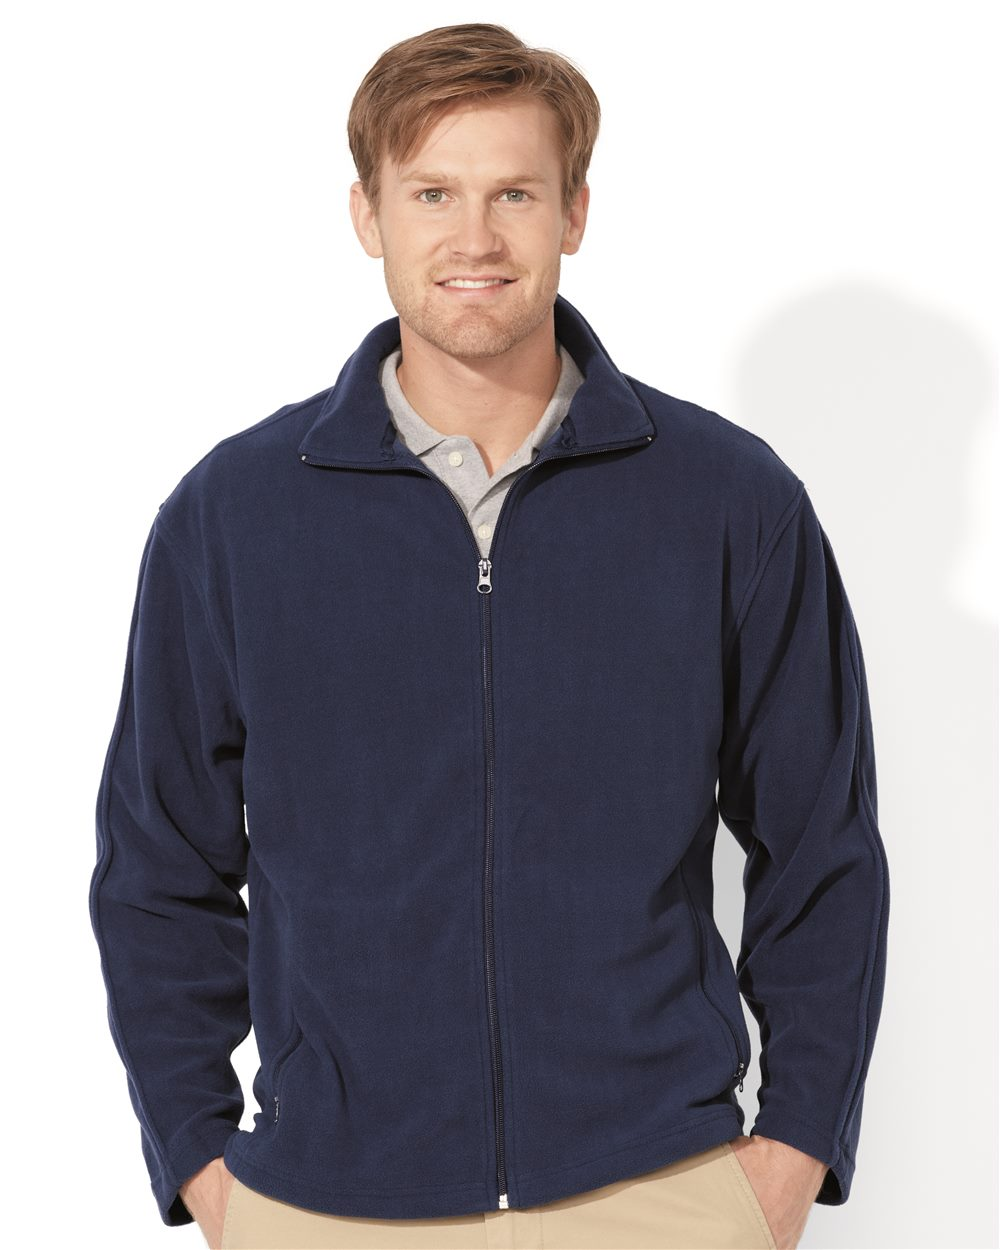 FeatherLite 3301 - Moisture Resistant Microfleece Full-Zip Jacket